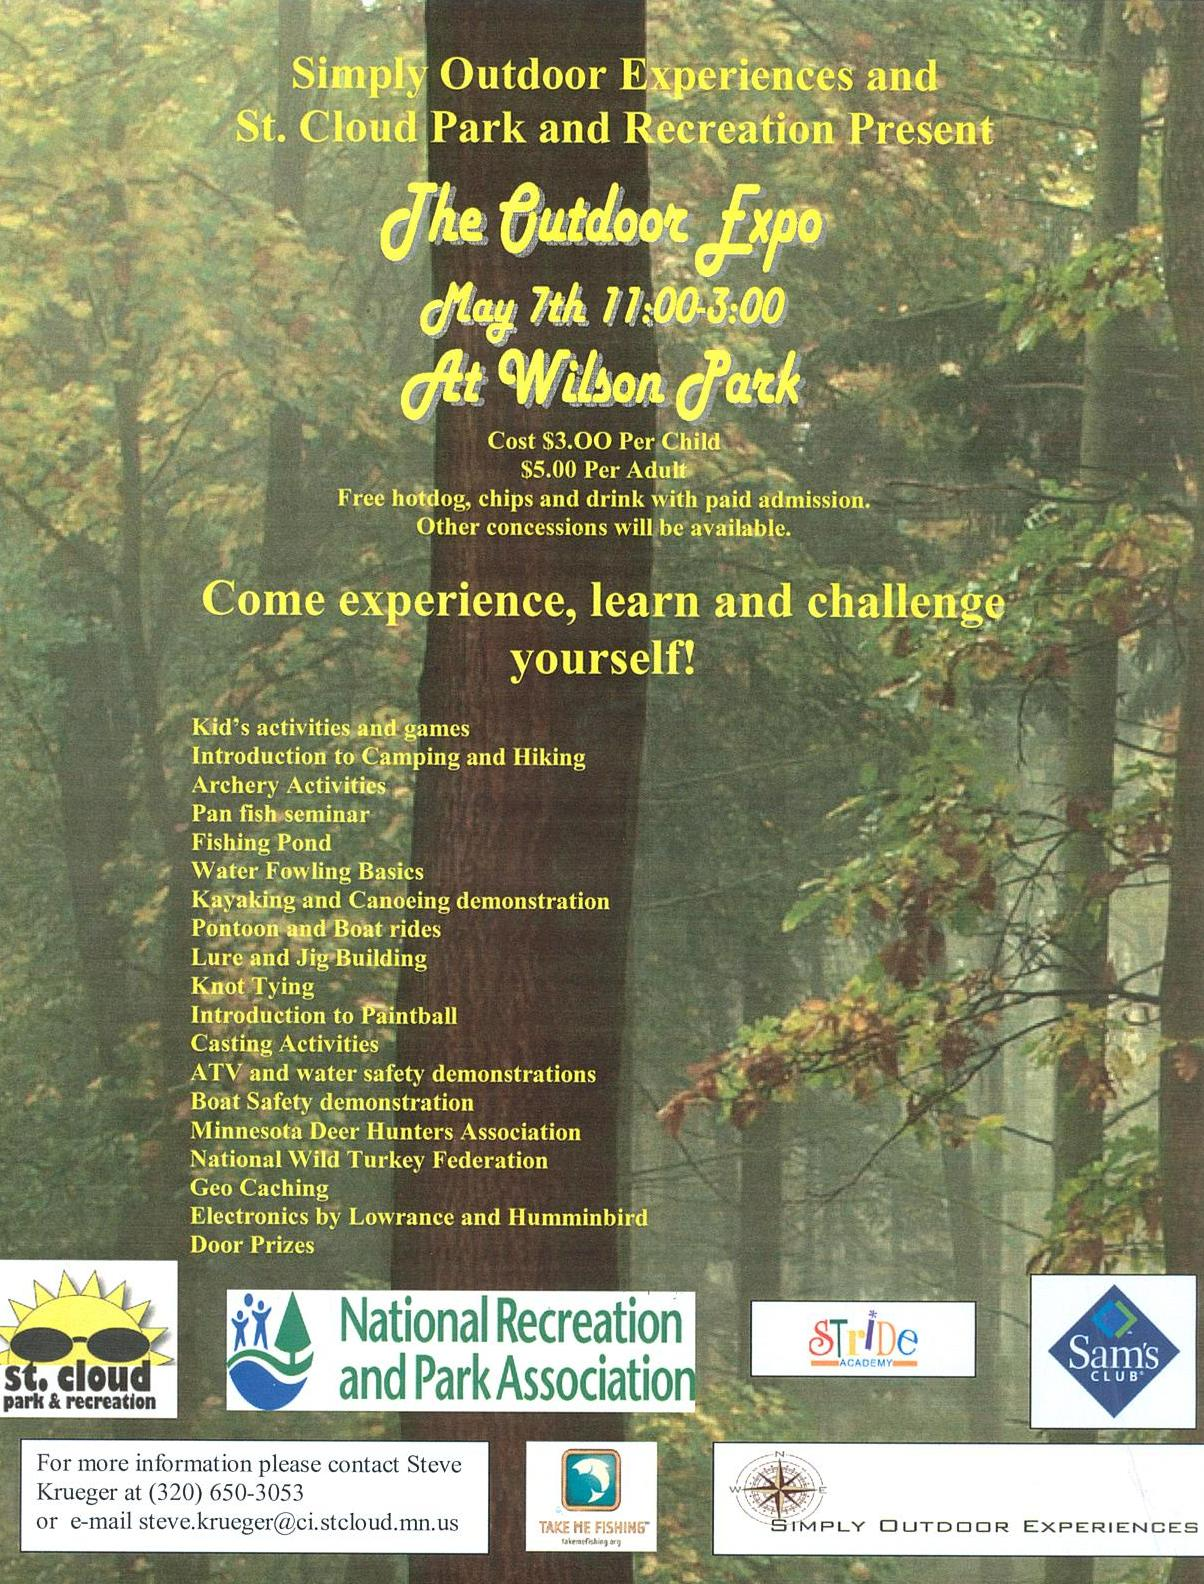 The Outdoor Expo